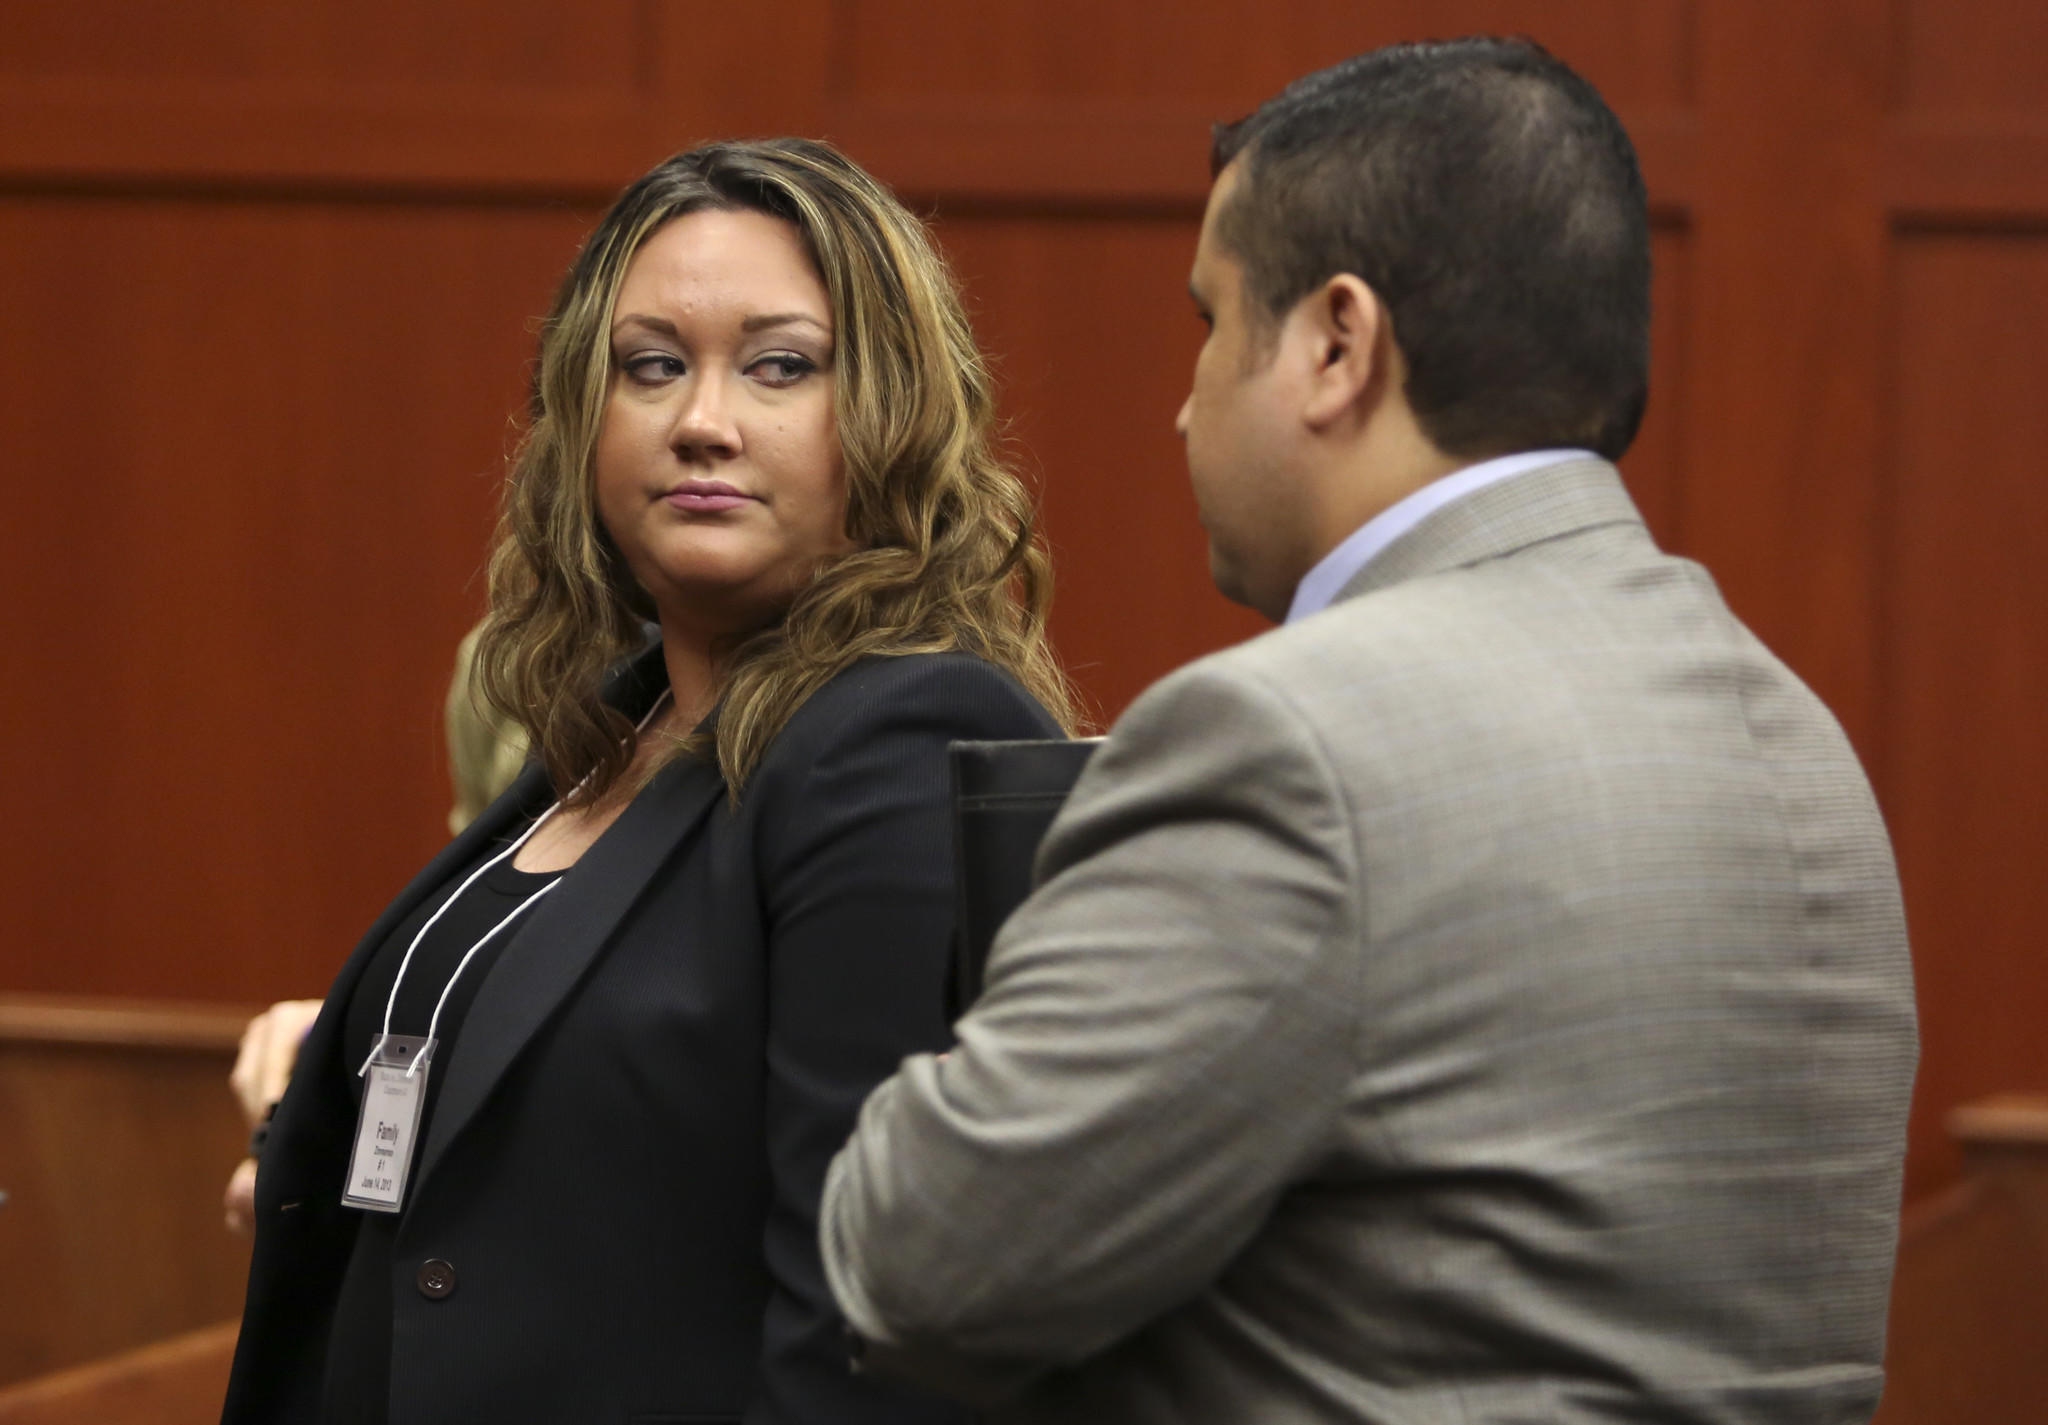 Shellie Zimmerman looks at her husband George Zimmerman as they leave the court room during a recess in Zimmerman's trial in Seminole circuit court in Sanford, Fla., Friday June 14, 2013.